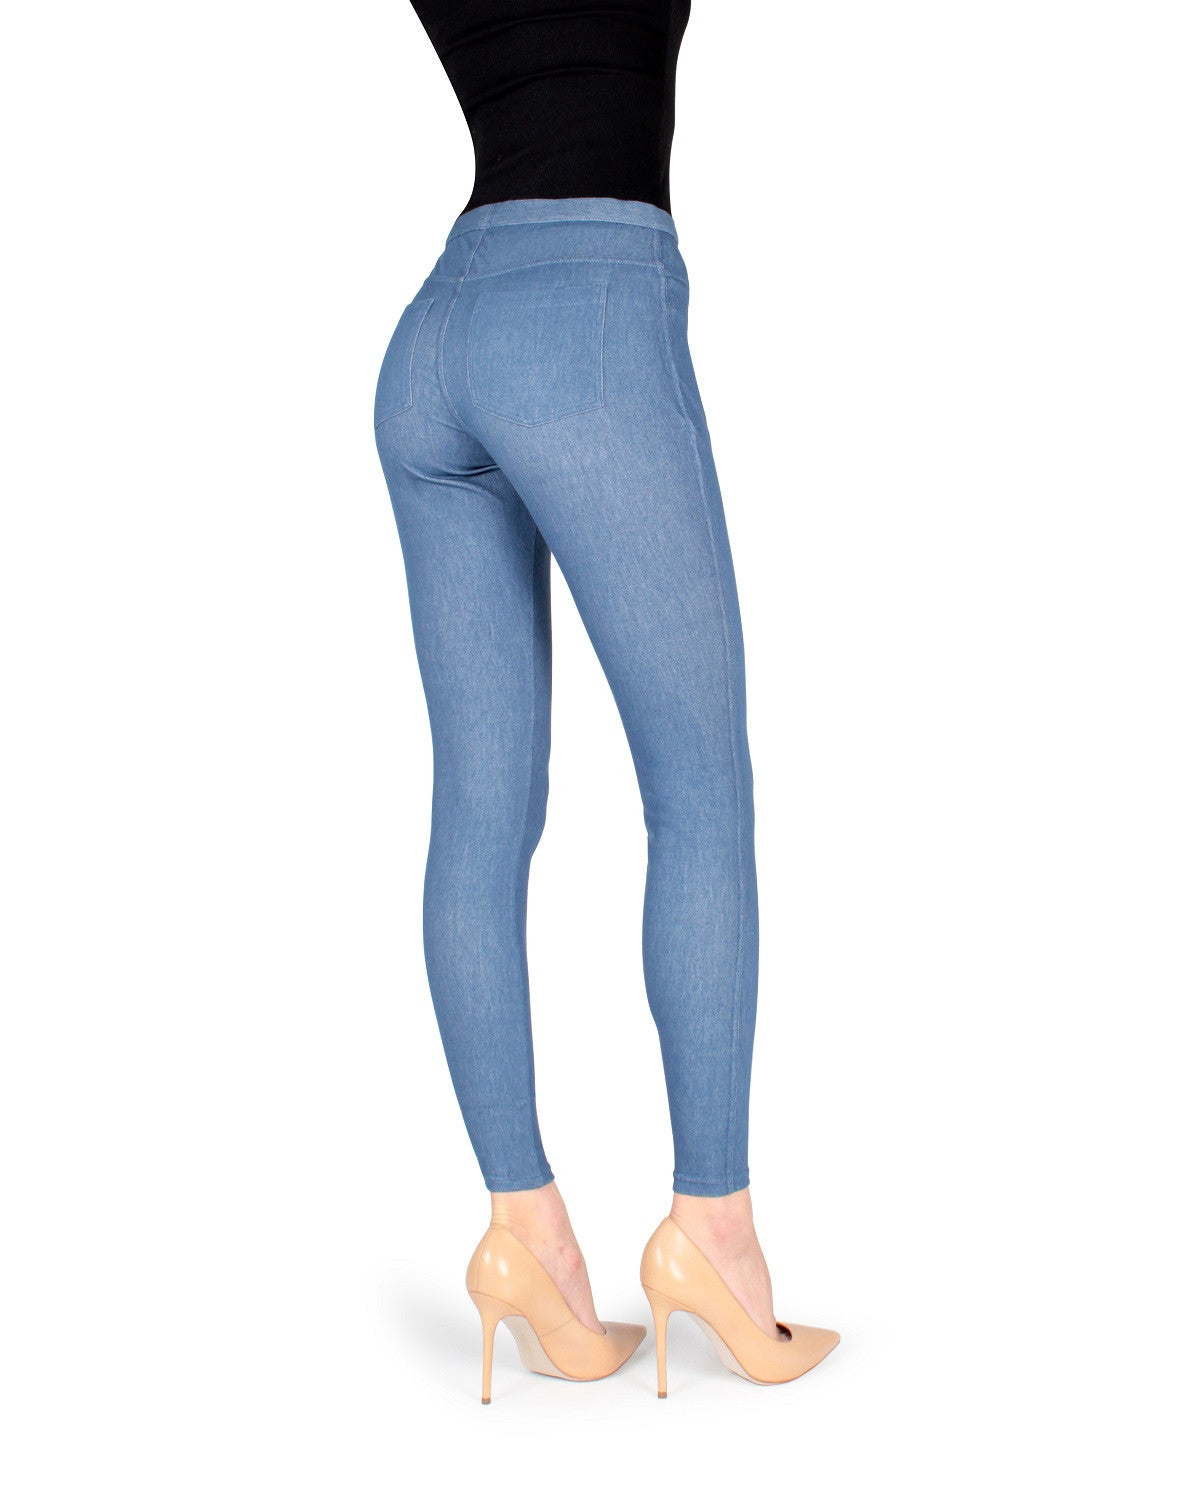 Bustle Denim Legging